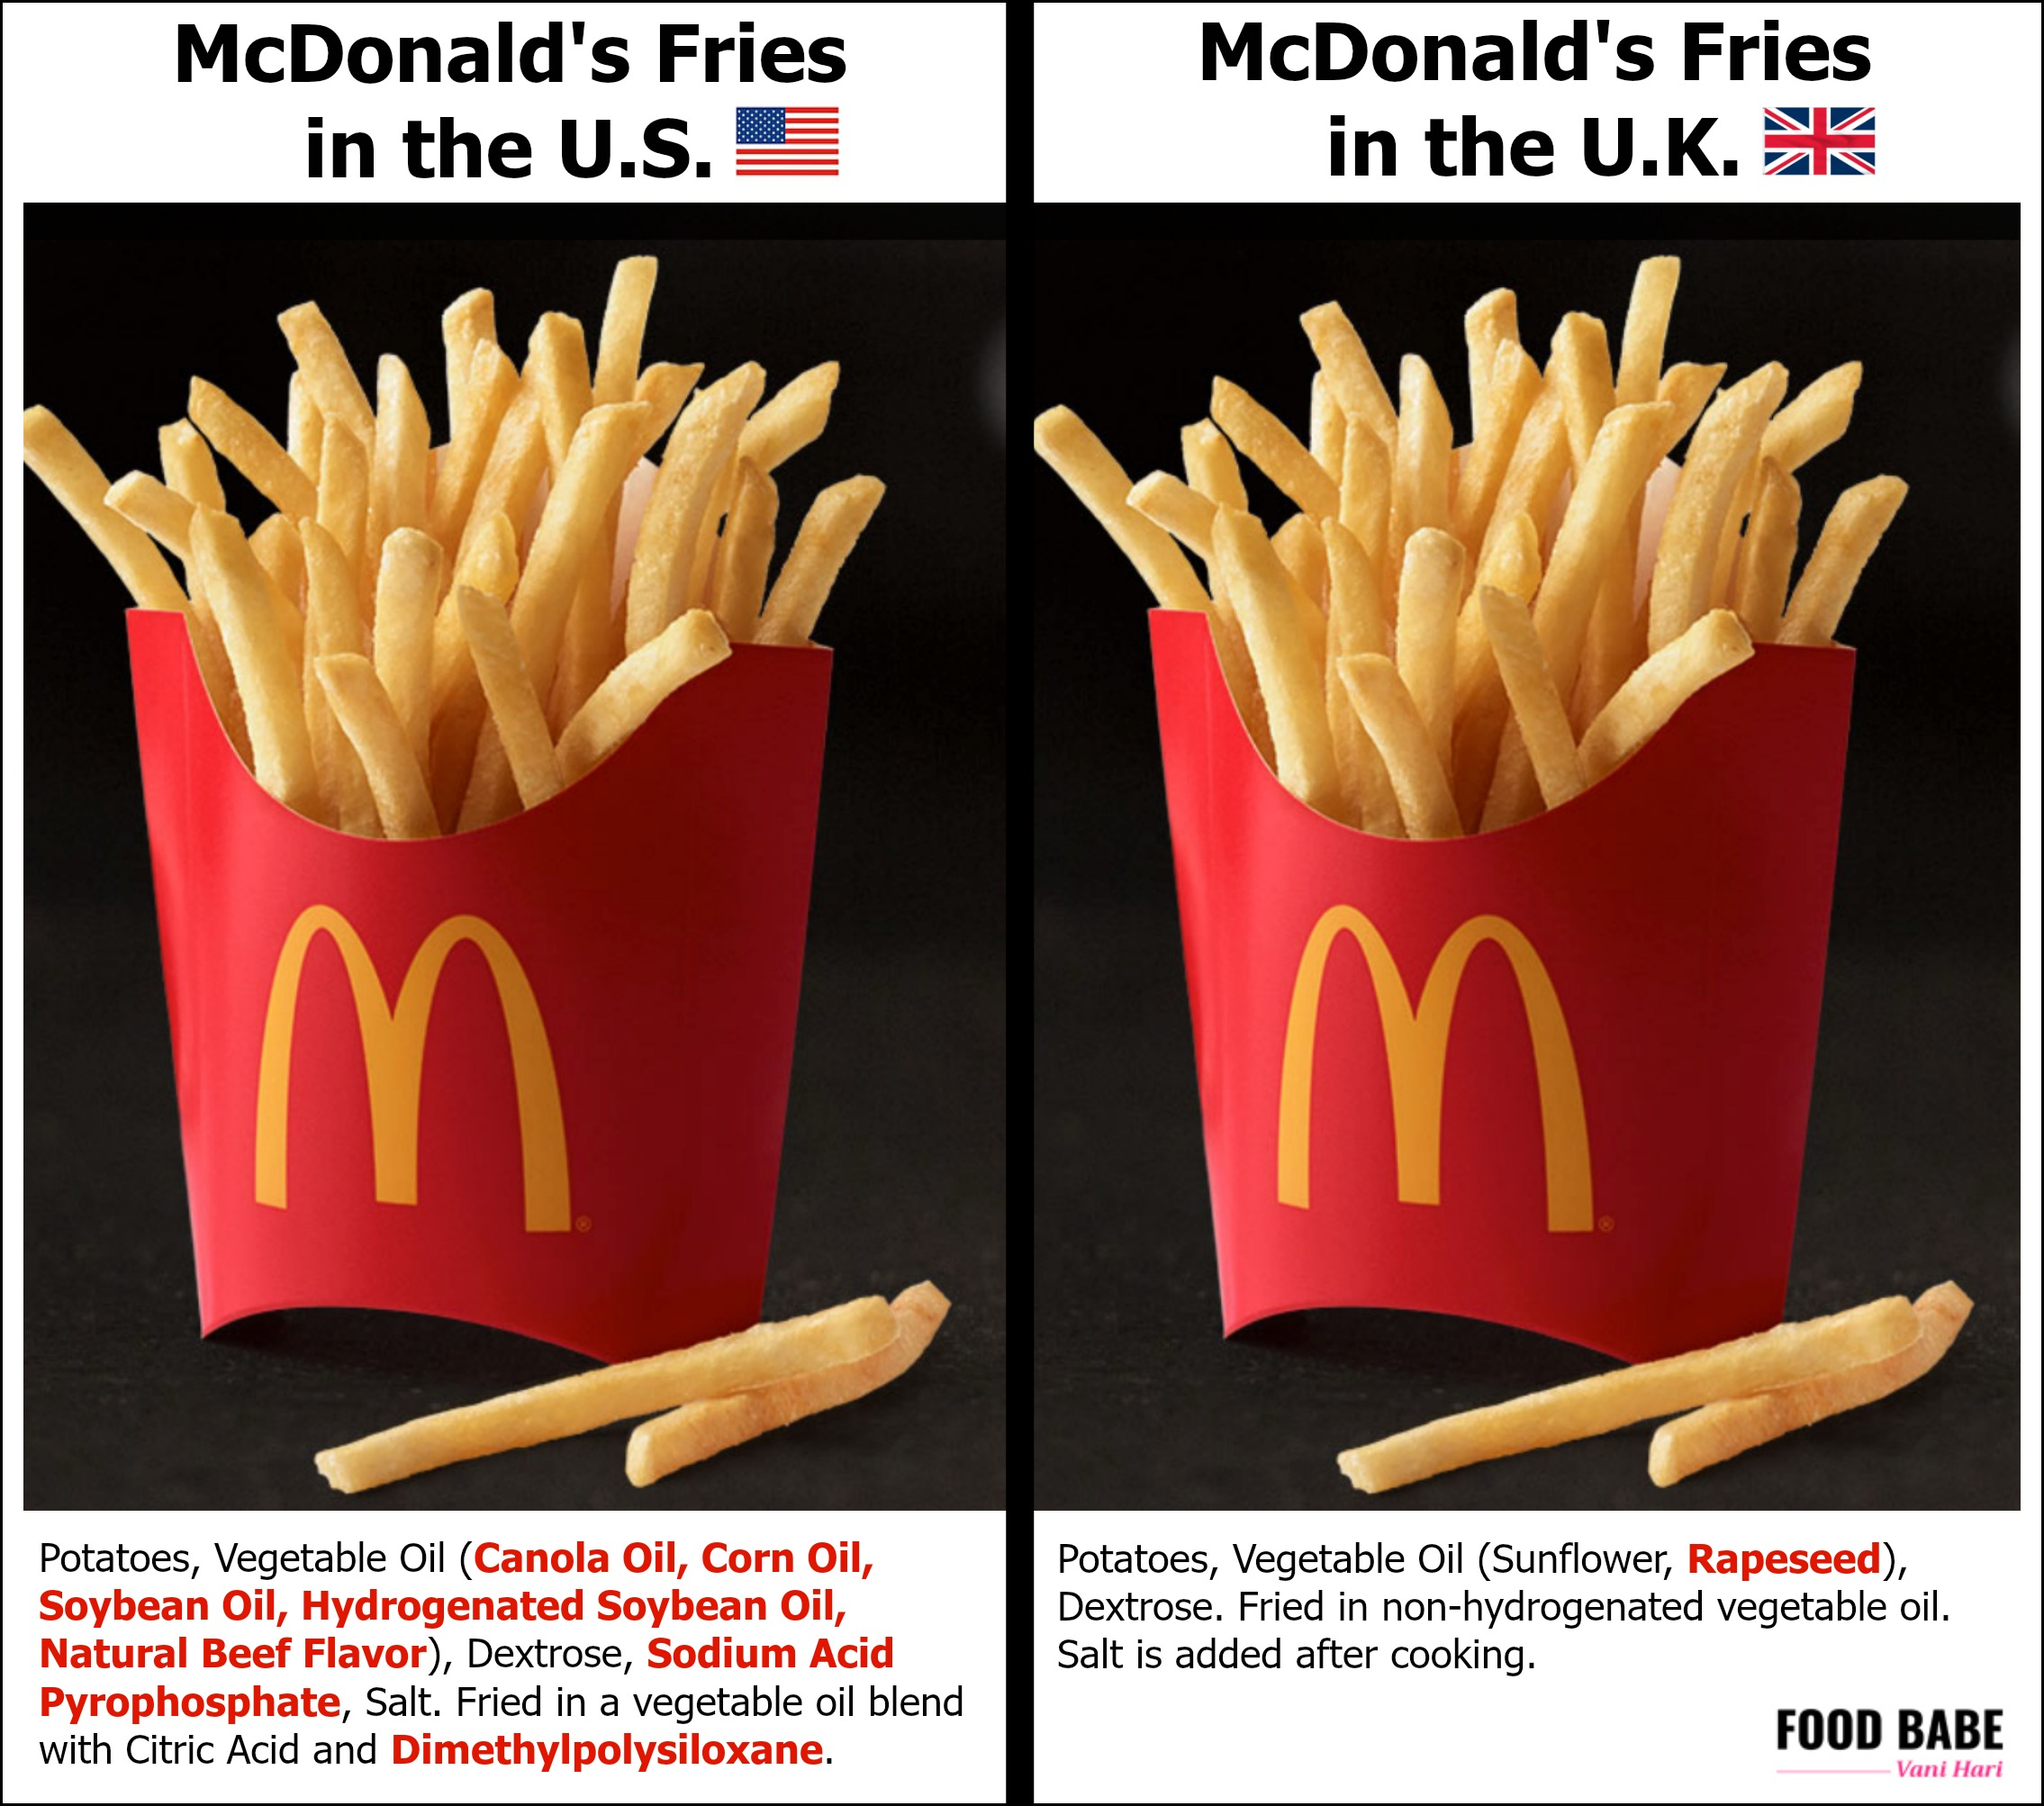 They Say McDonald's Is Removing Artificial Ingredients - Here's the truth about McDonald's food! 53